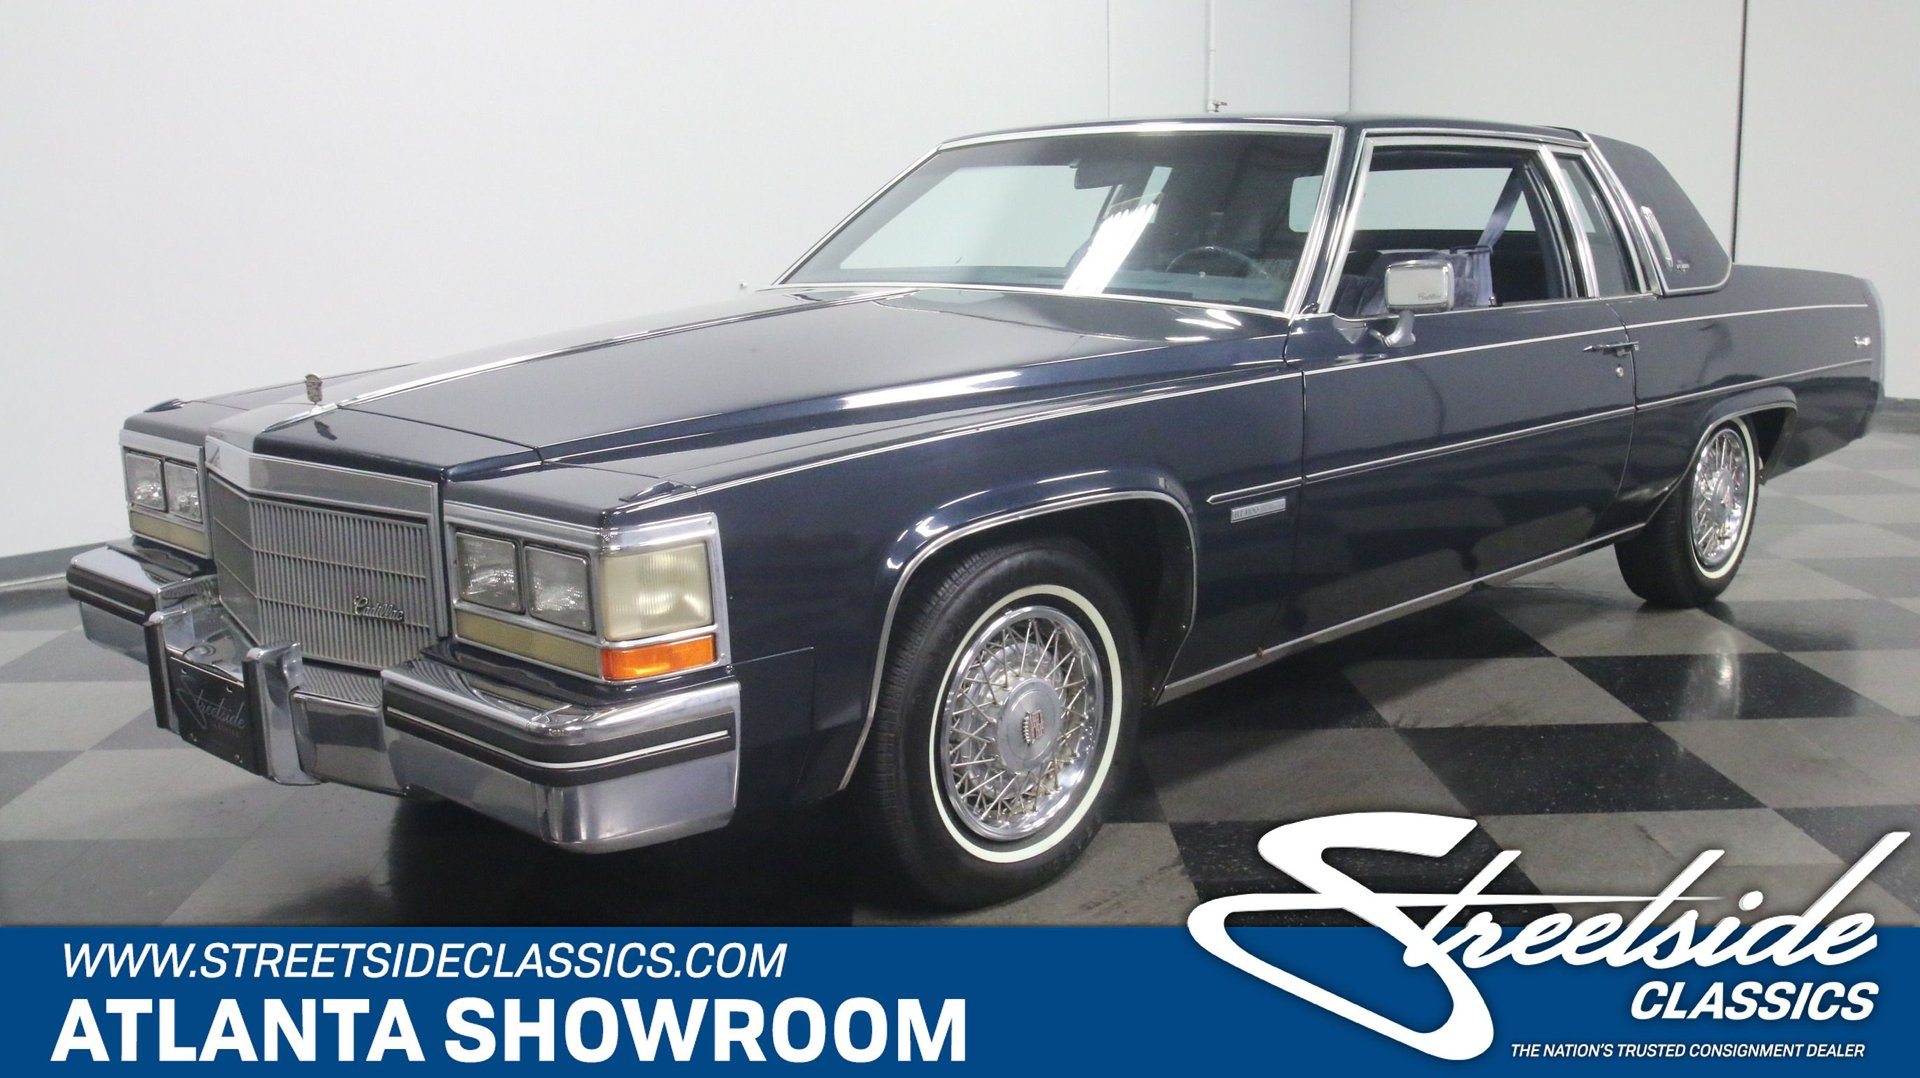 1983 cadillac coupe deville streetside classics the nation s trusted classic car consignment dealer 1983 cadillac coupe deville